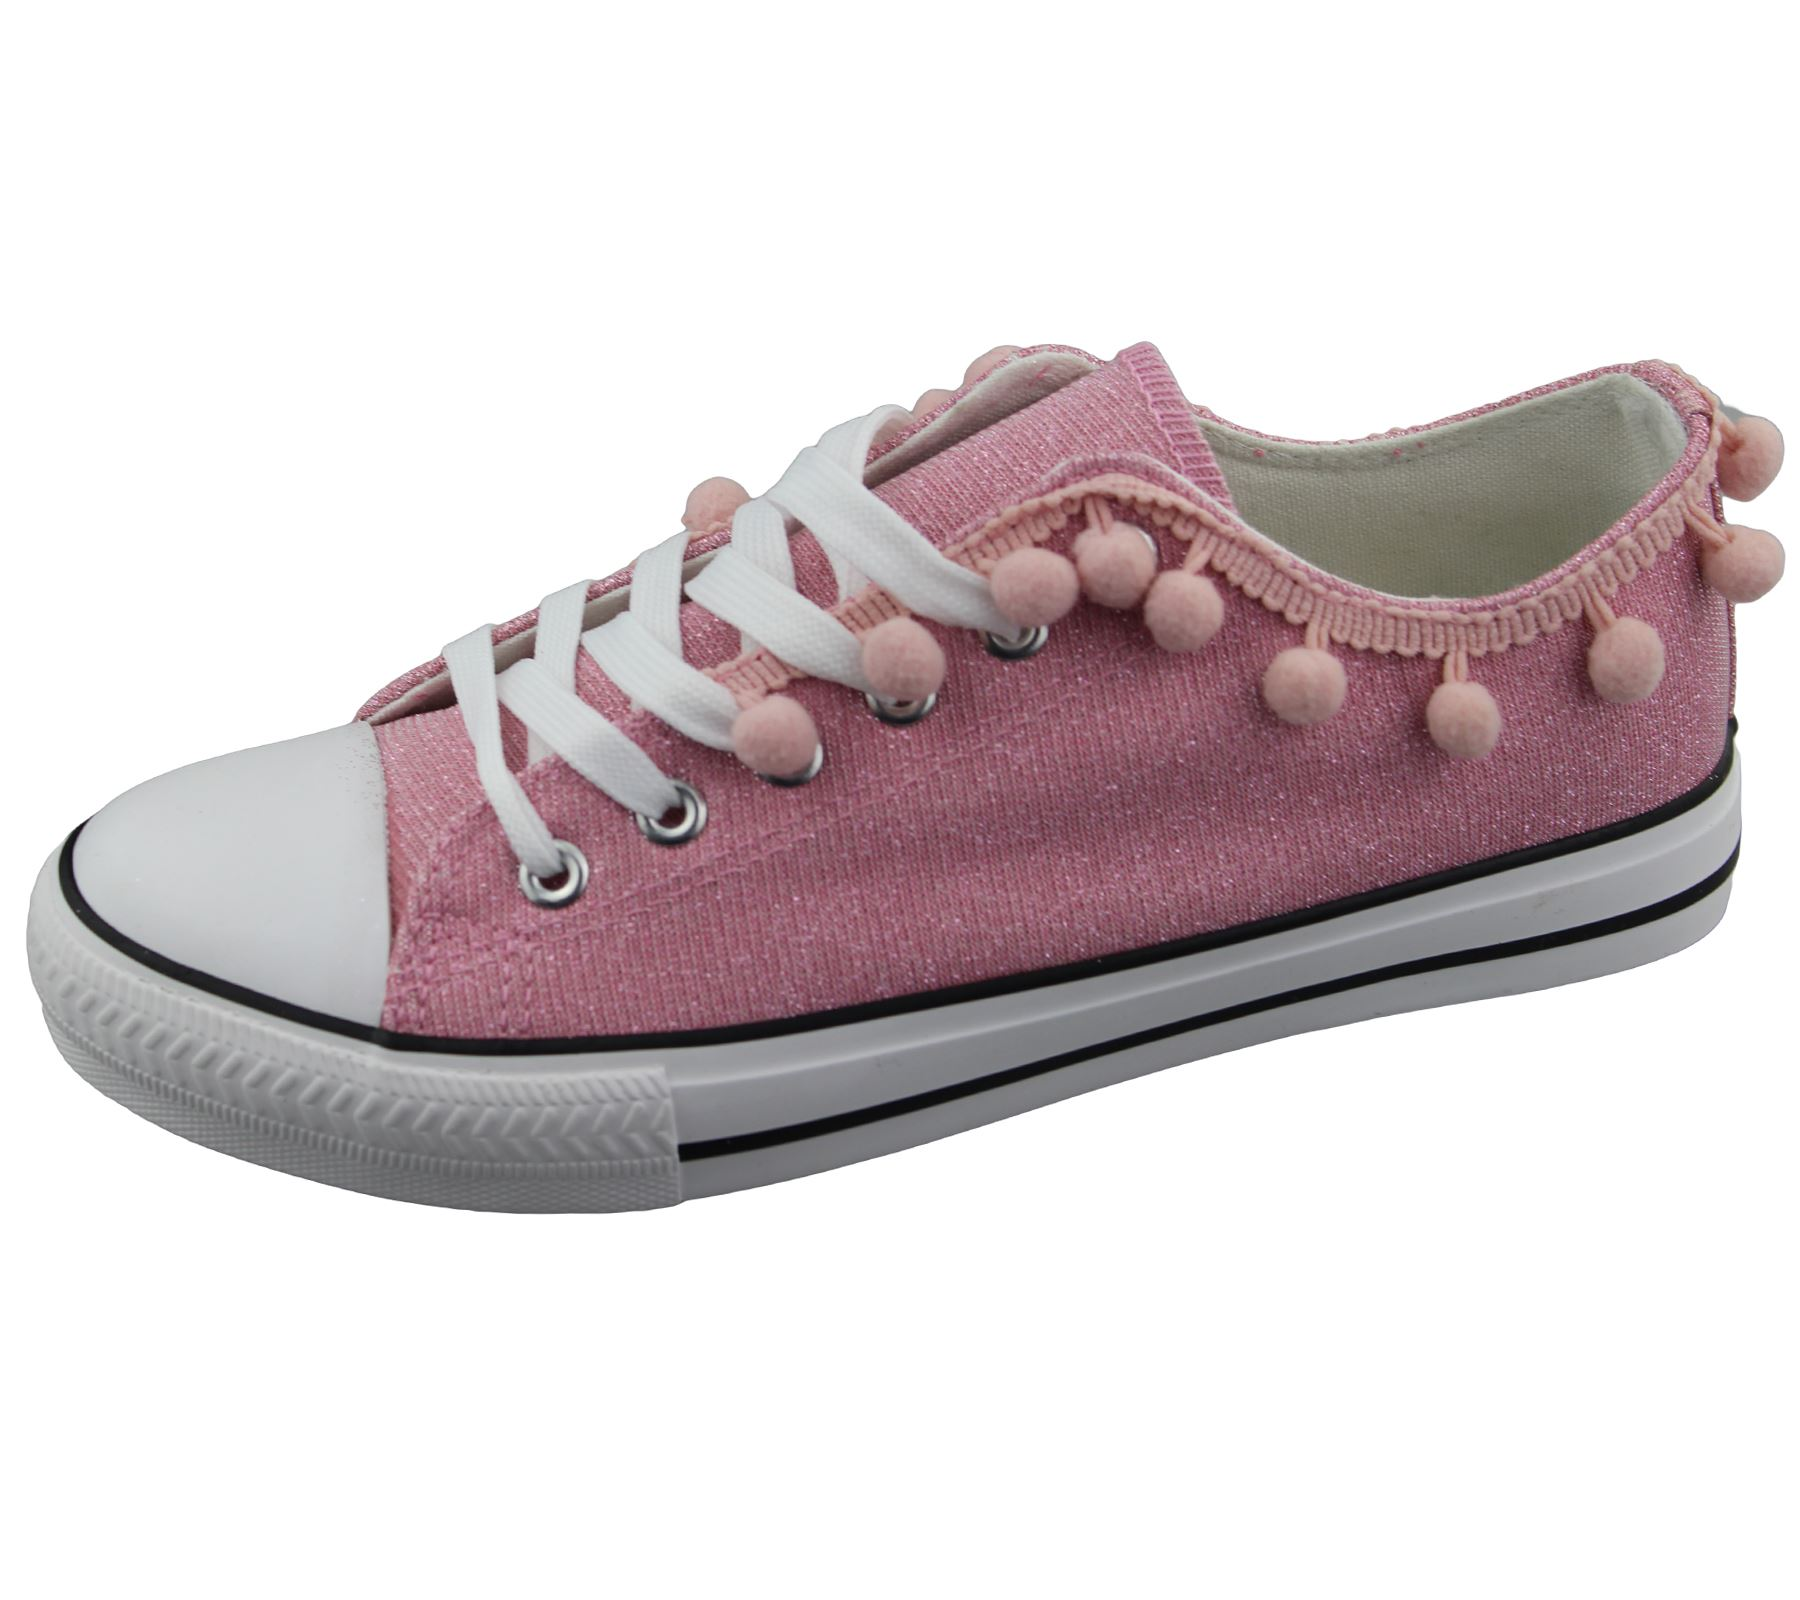 Womens-Sneakers-Flat-Pumps-Ladies-Glittered-Summer-Plimsole-Canvas-Shoes thumbnail 37